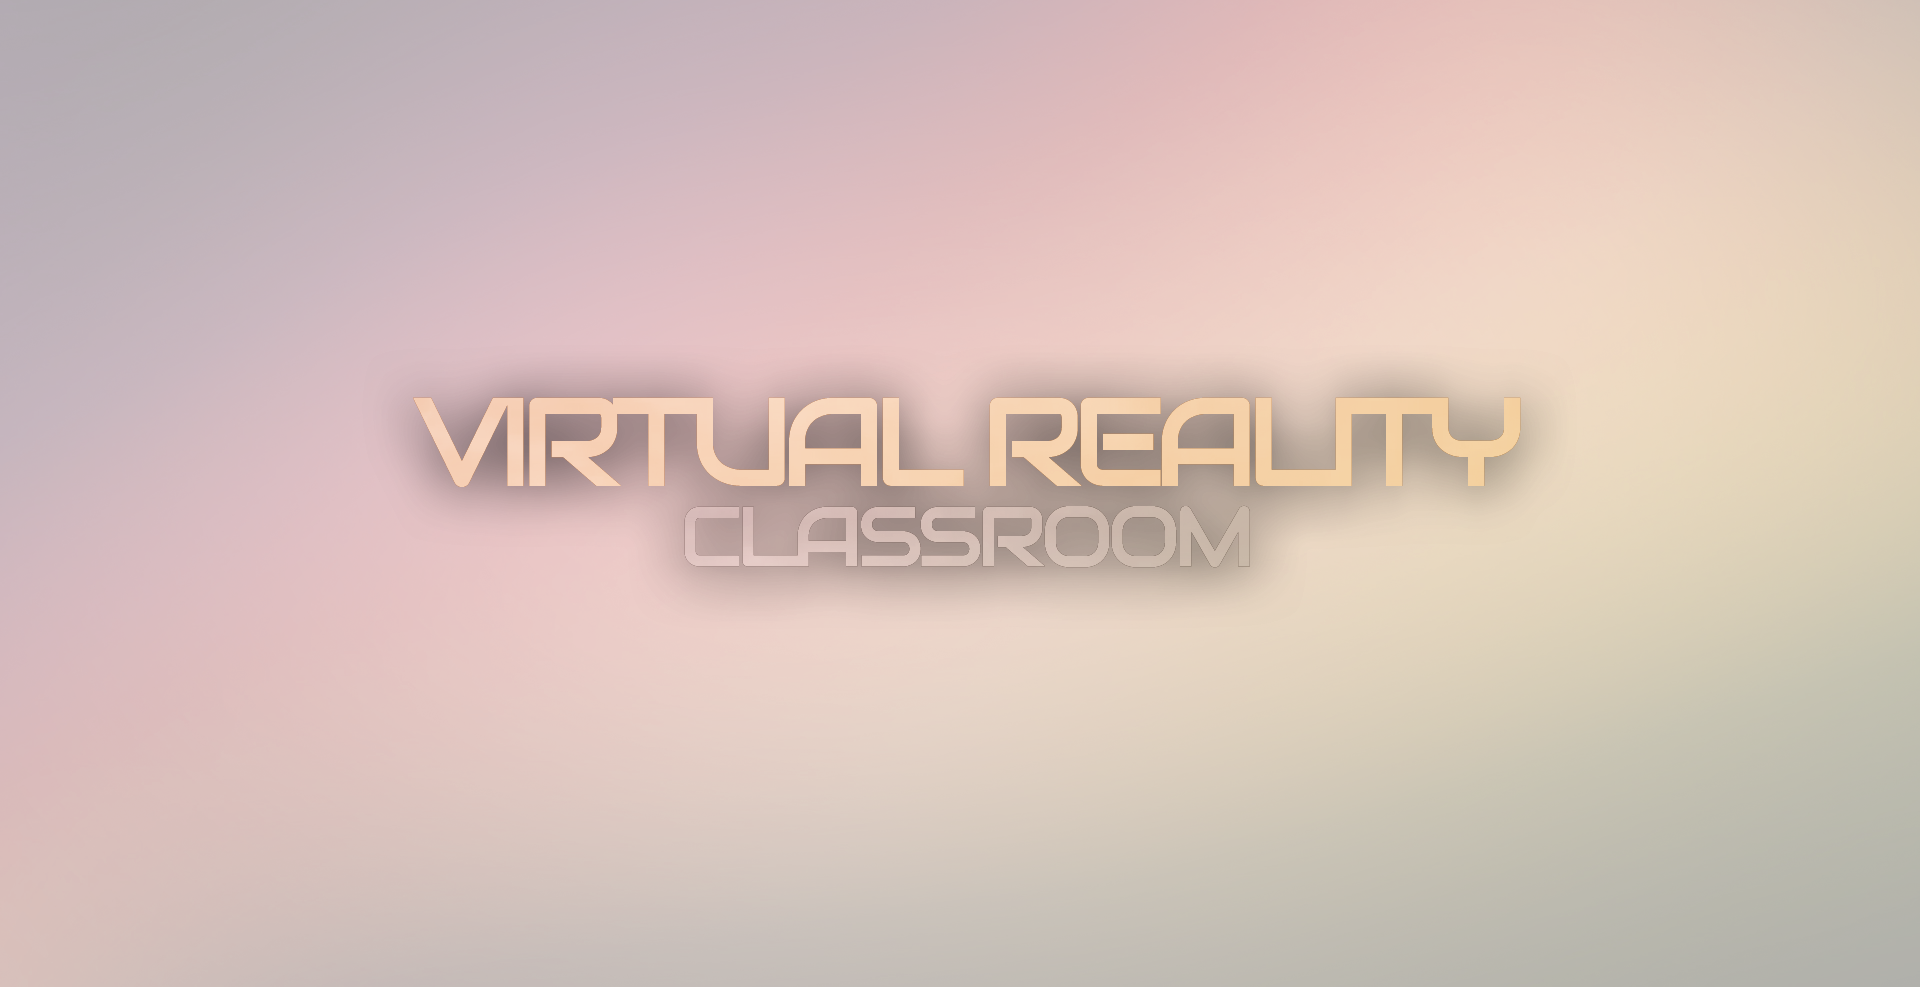 Feature- Virtual Reality Classrooms | YourCentralValley com KSEE24